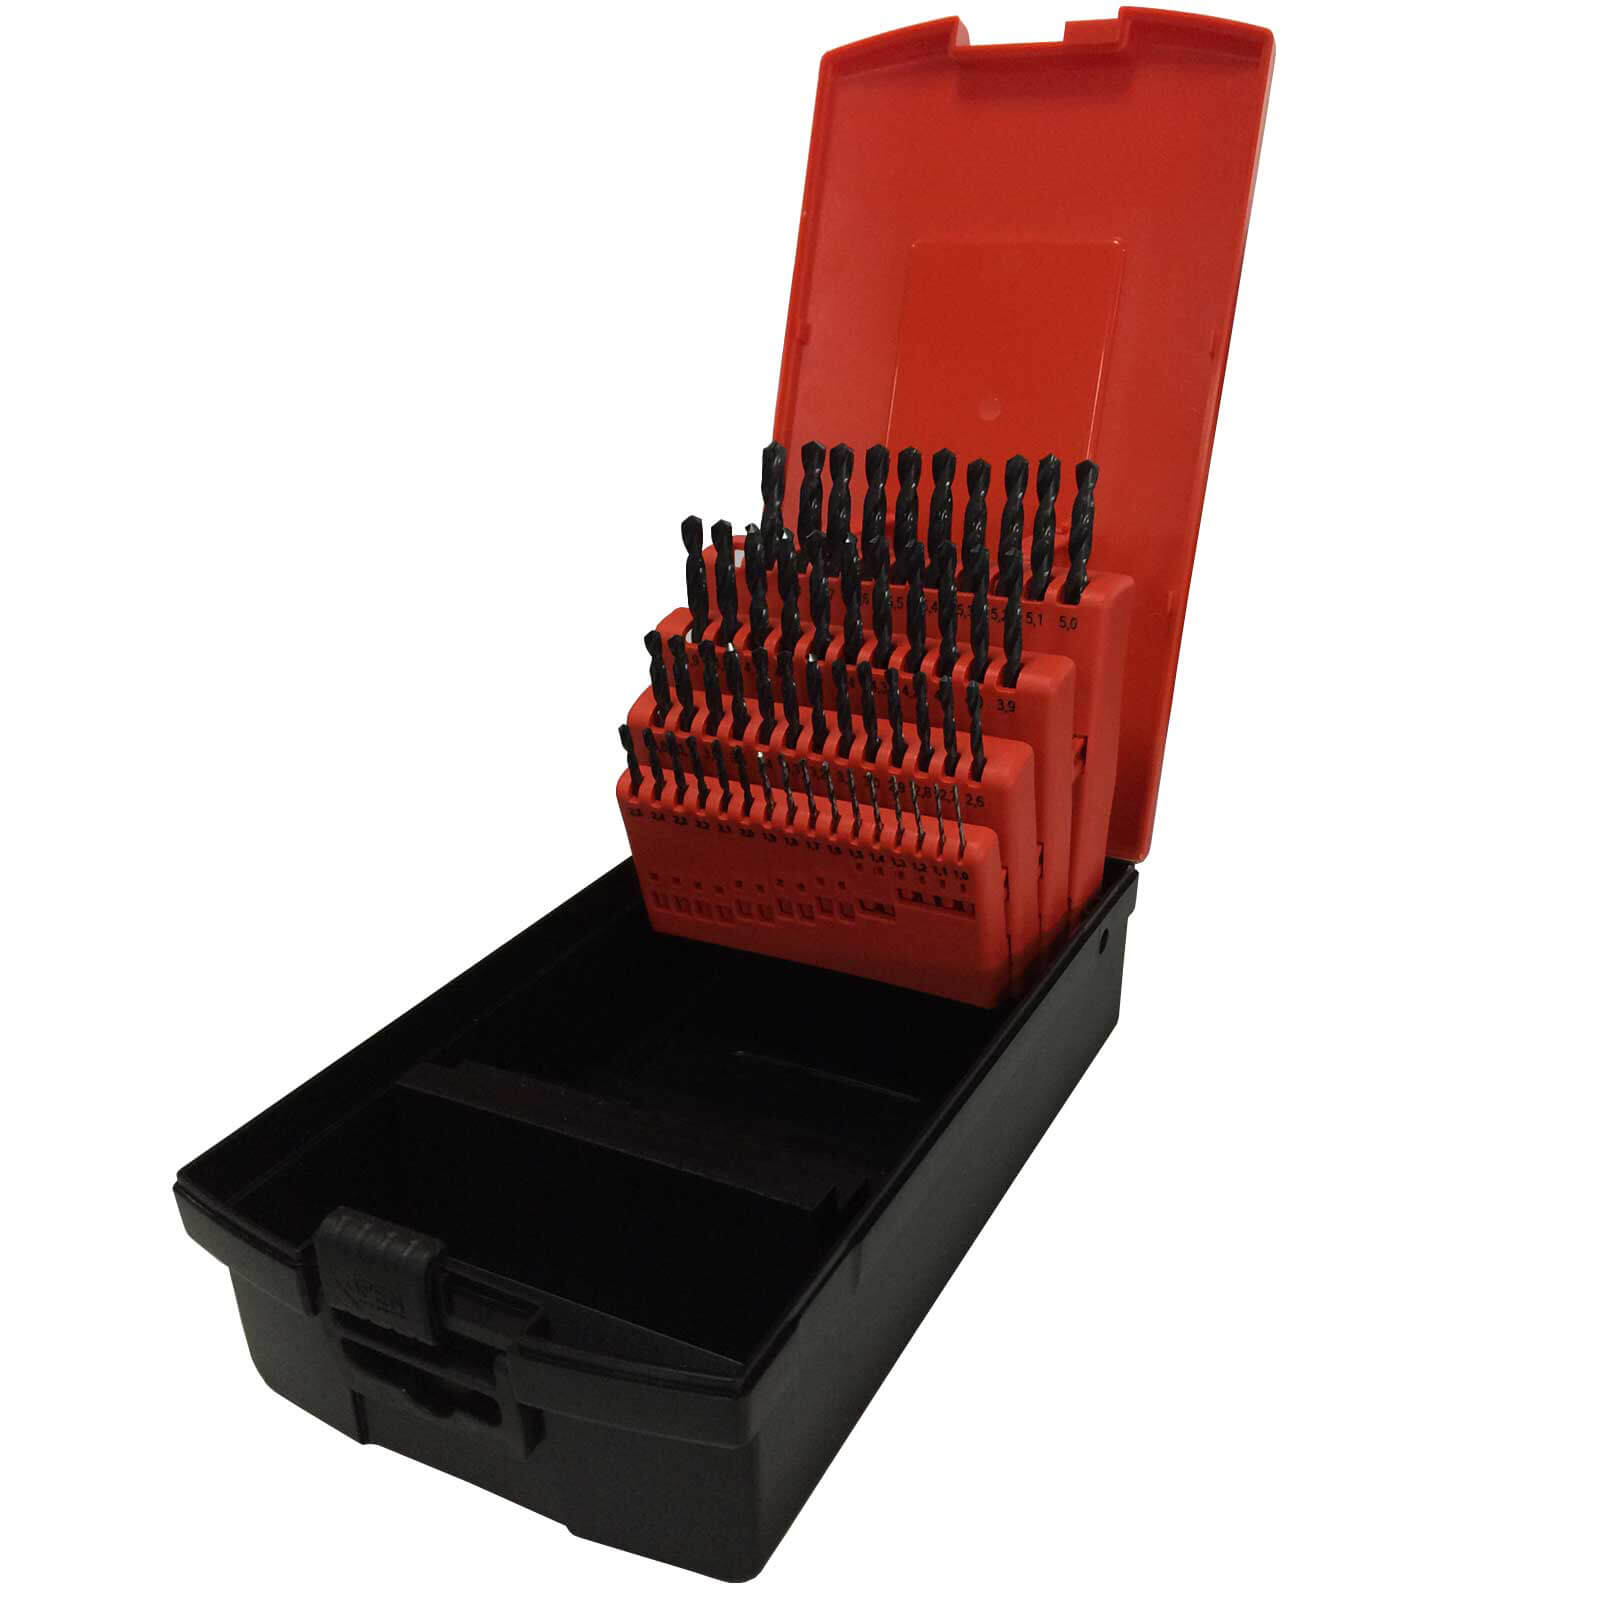 Image of Osborn 50 Piece HSS 1.0 - 5.9mm By 0.1mm Drill Set